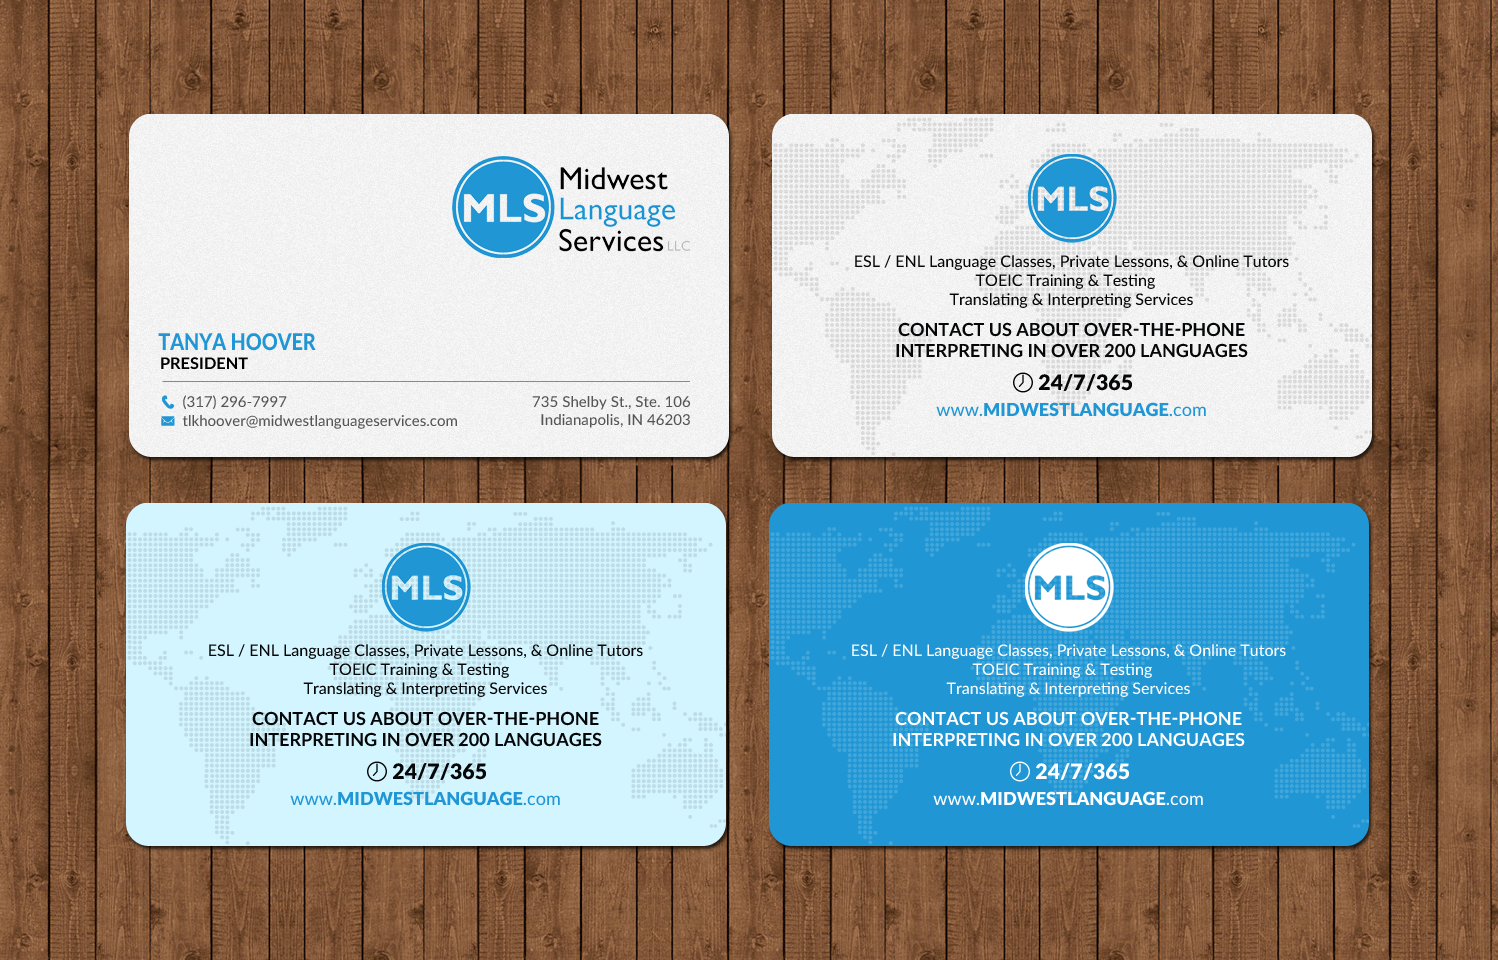 Serious modern business business card design for midwest language business card design by chandrayaaneative for midwest language services llc design colourmoves